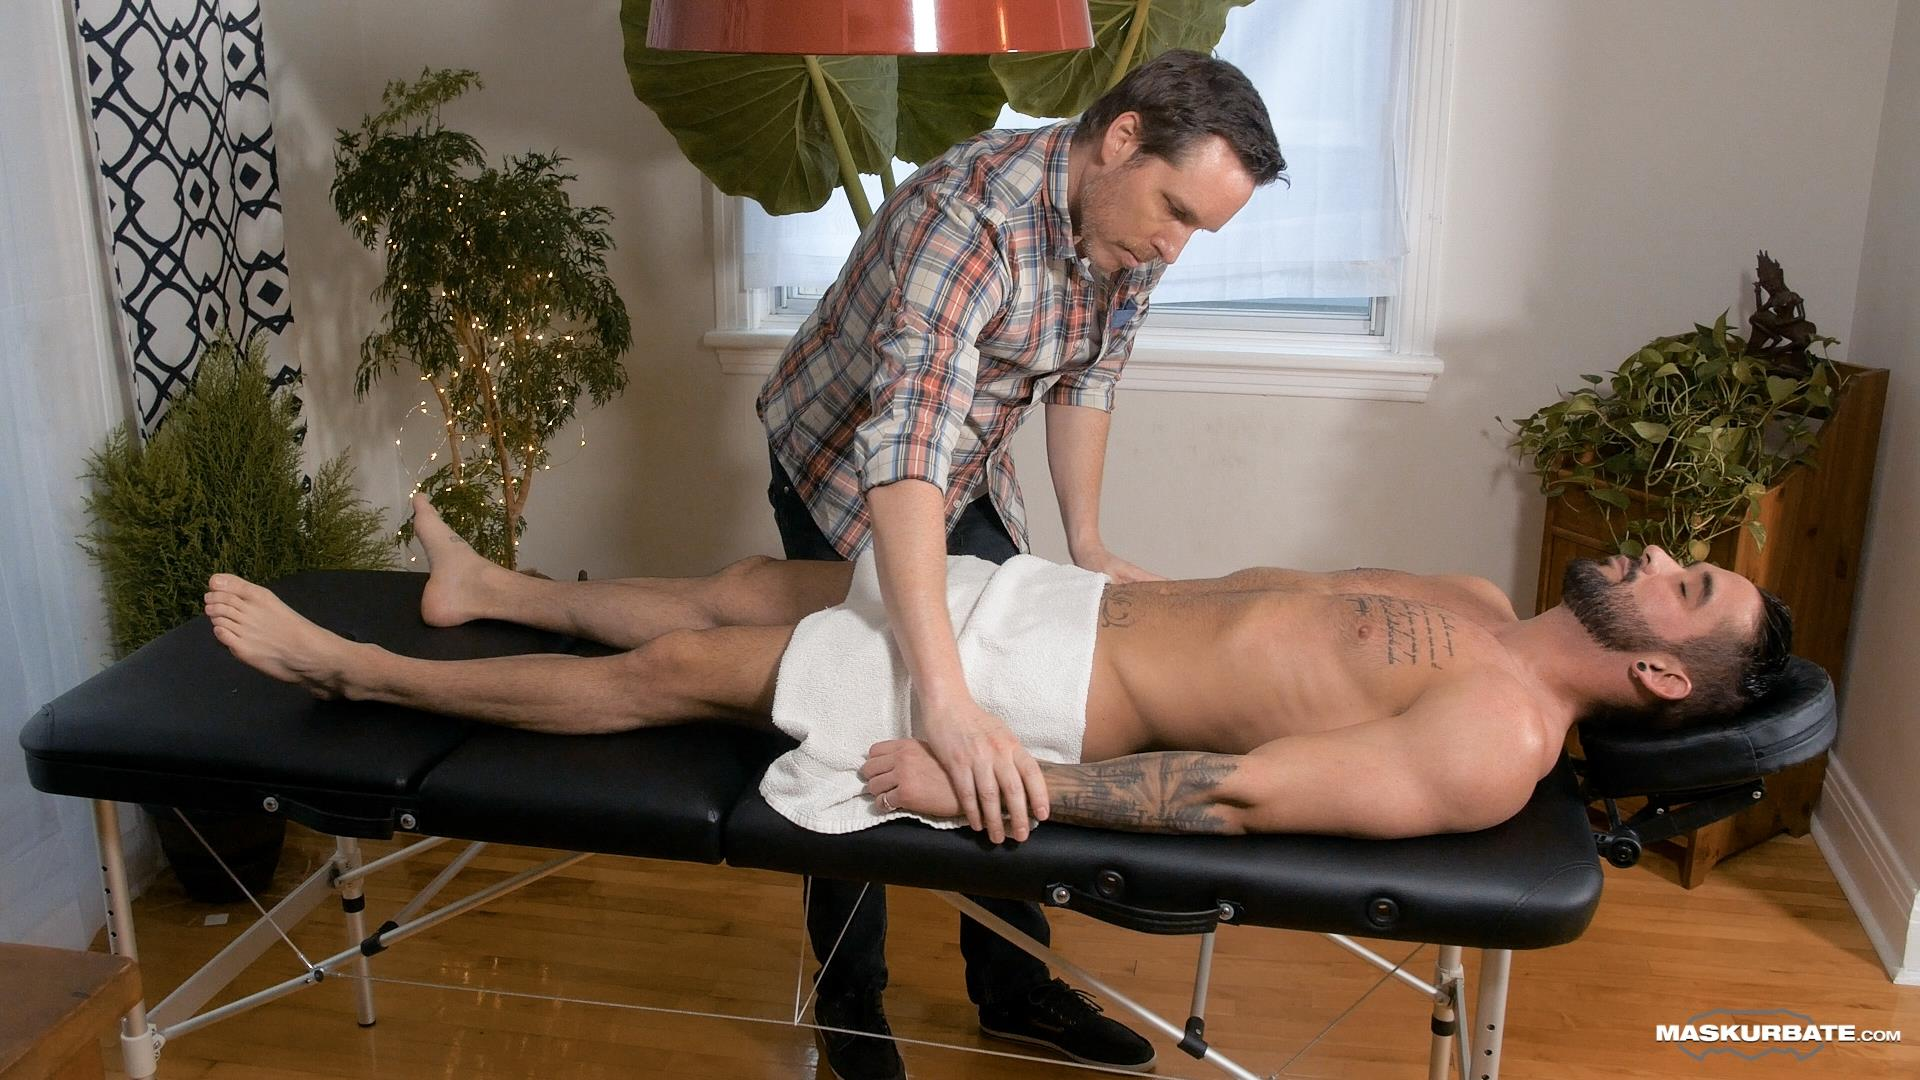 Maskurbate-Zack-Lemec-Gay-Massage-With-Happy-Ending-04 Zack Lemec Get's His First Gay Massage With A Happy Ending